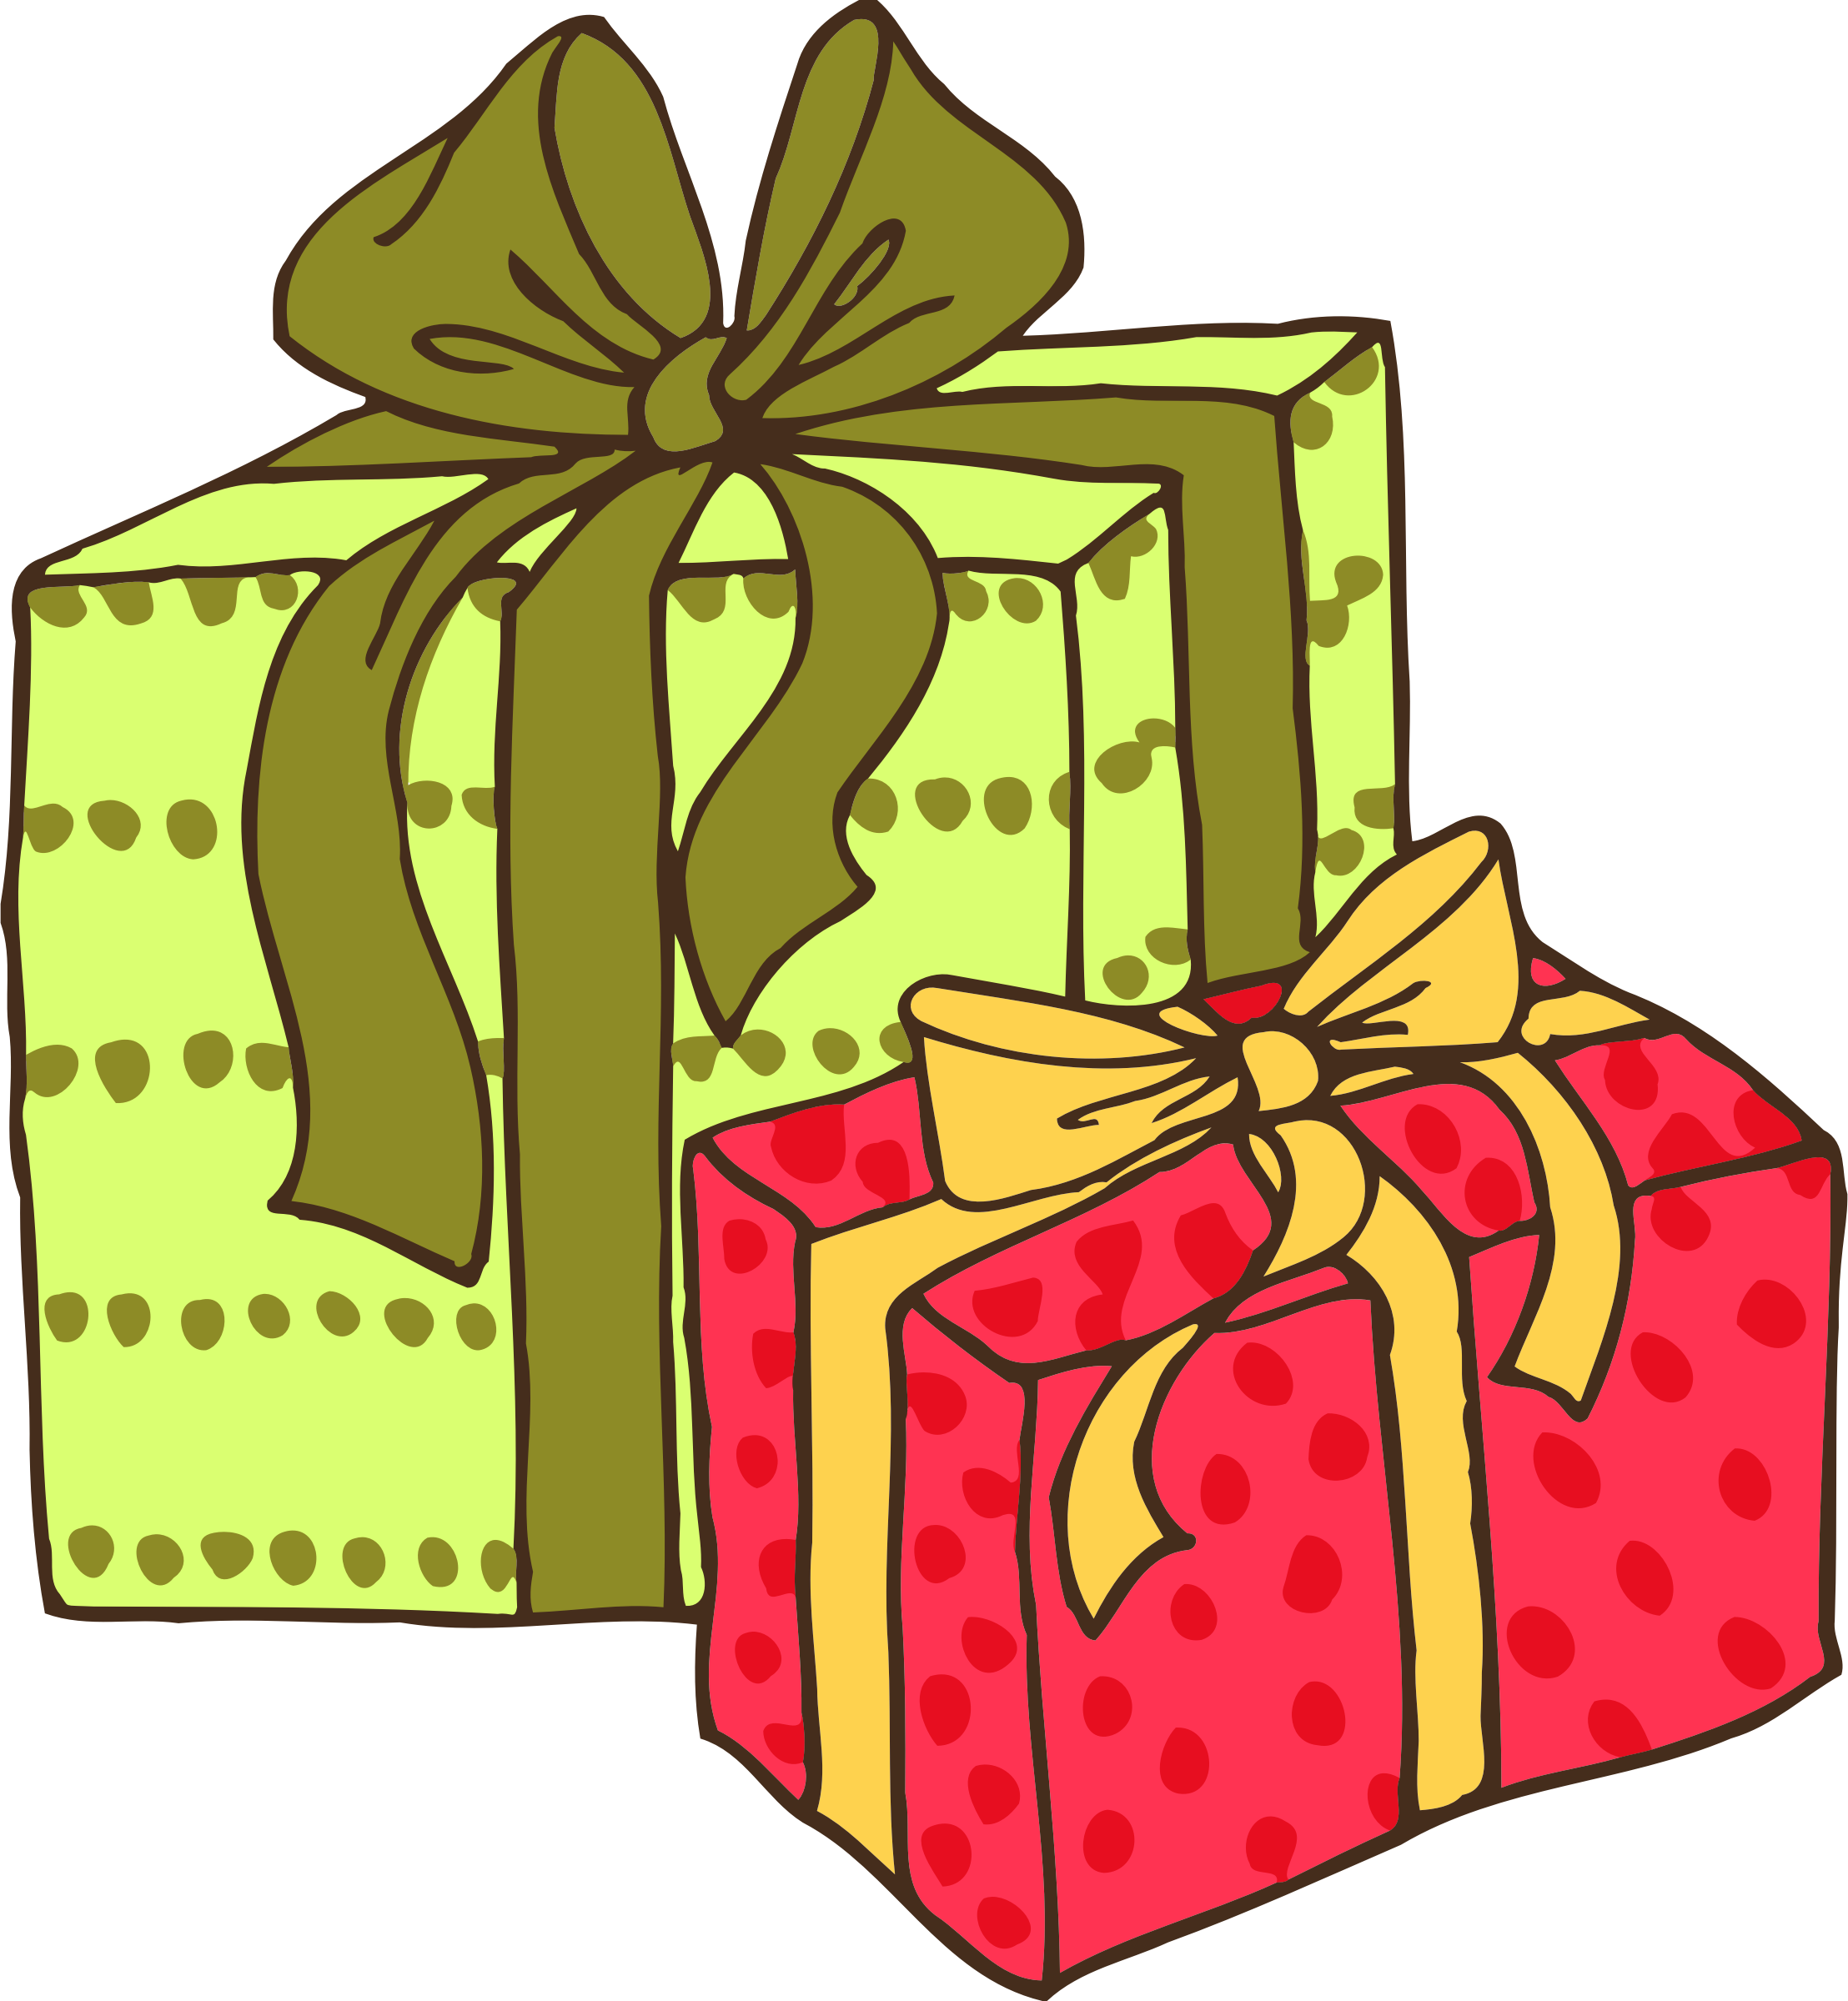 clipart presents rh openclipart org clipart presents free clipart christmas presents